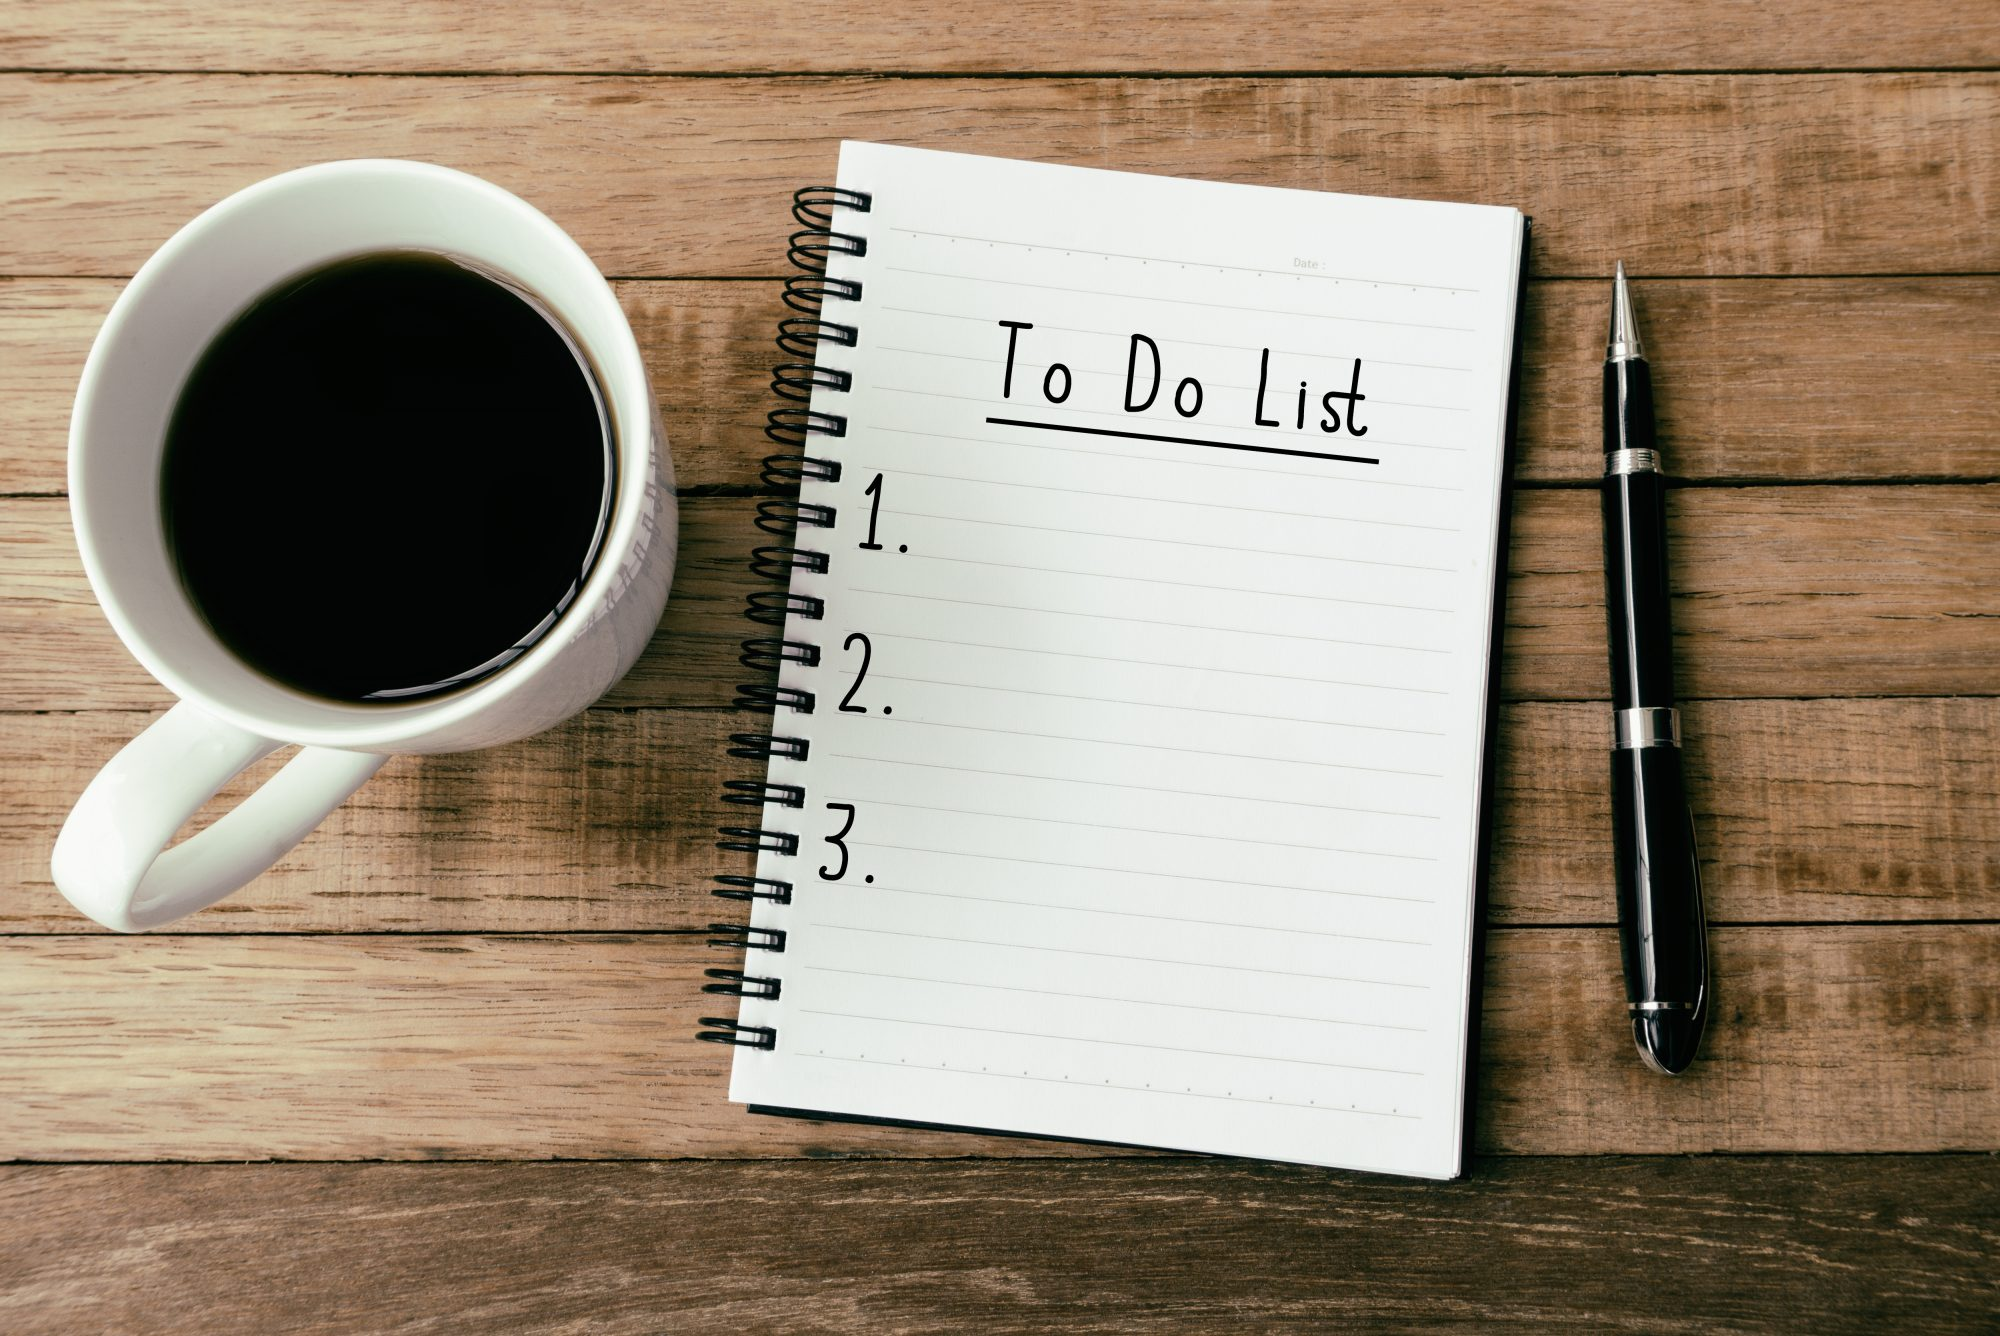 Why Doing Nothing Should Be on Your To-Do List, According to Research